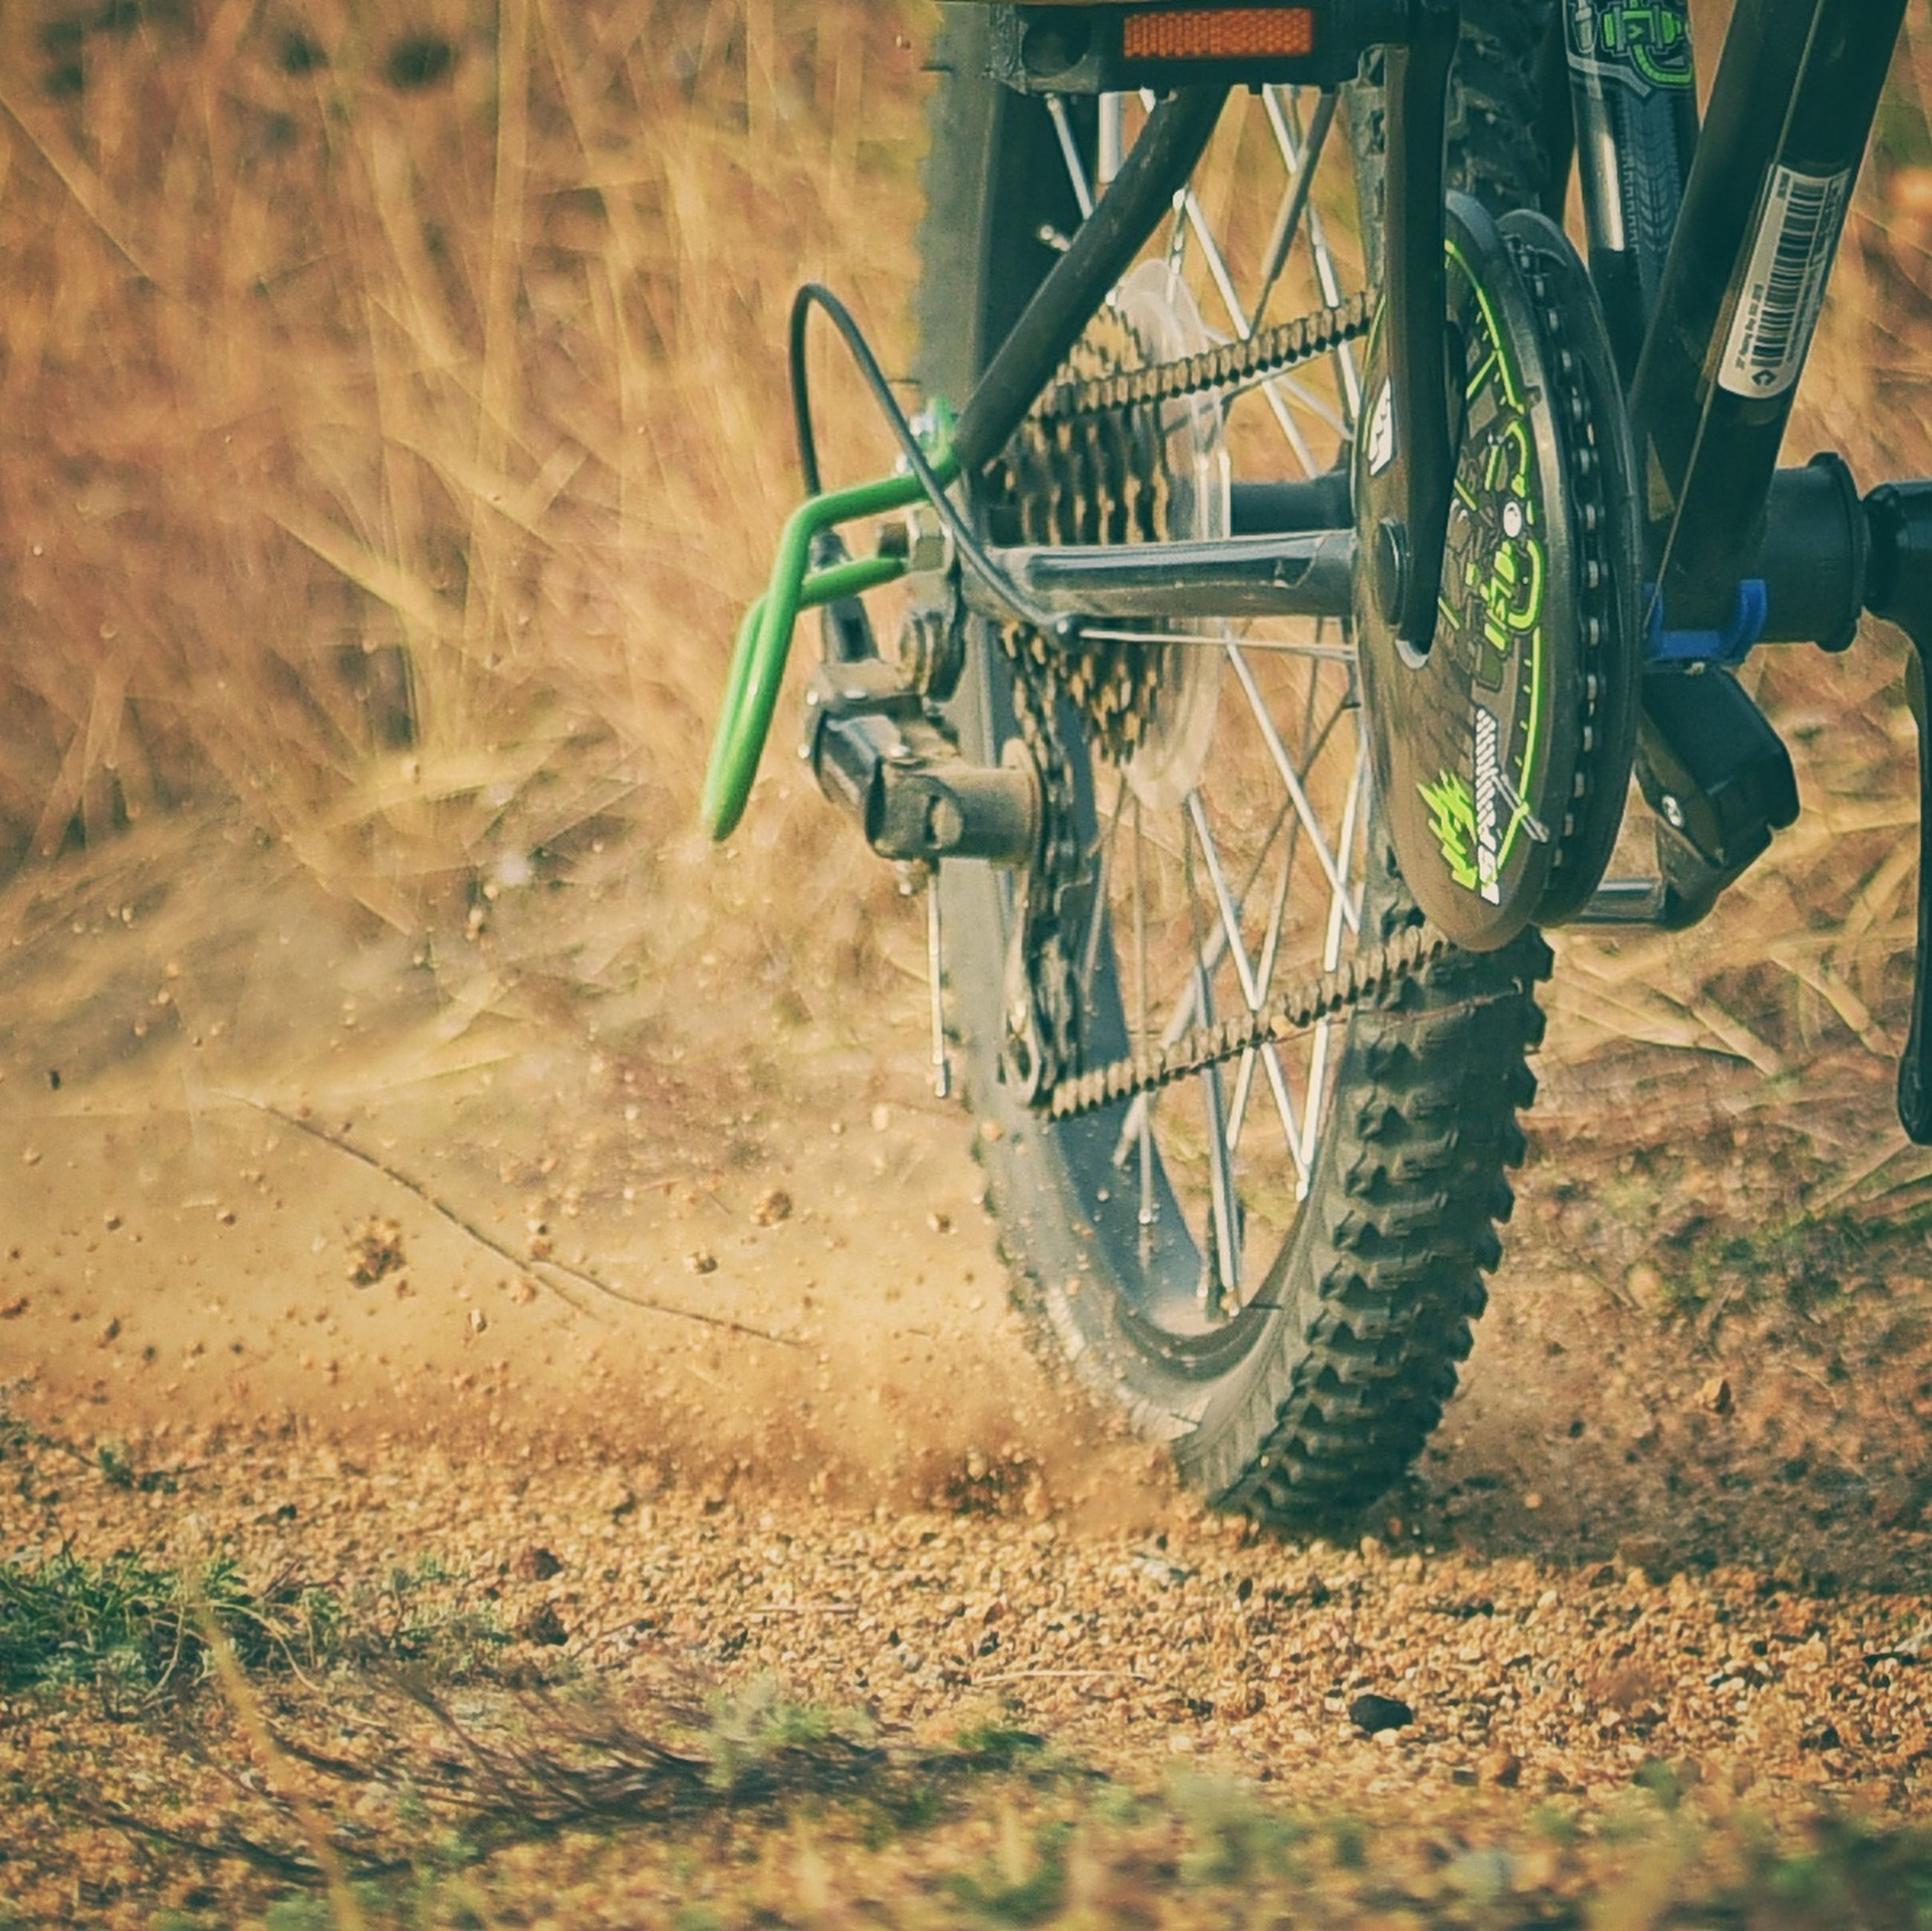 transportation, land vehicle, mode of transportation, wheel, day, land, field, nature, outdoors, no people, stationary, dirt road, bicycle, dirt, motorcycle, tire, travel, plant, road, selective focus